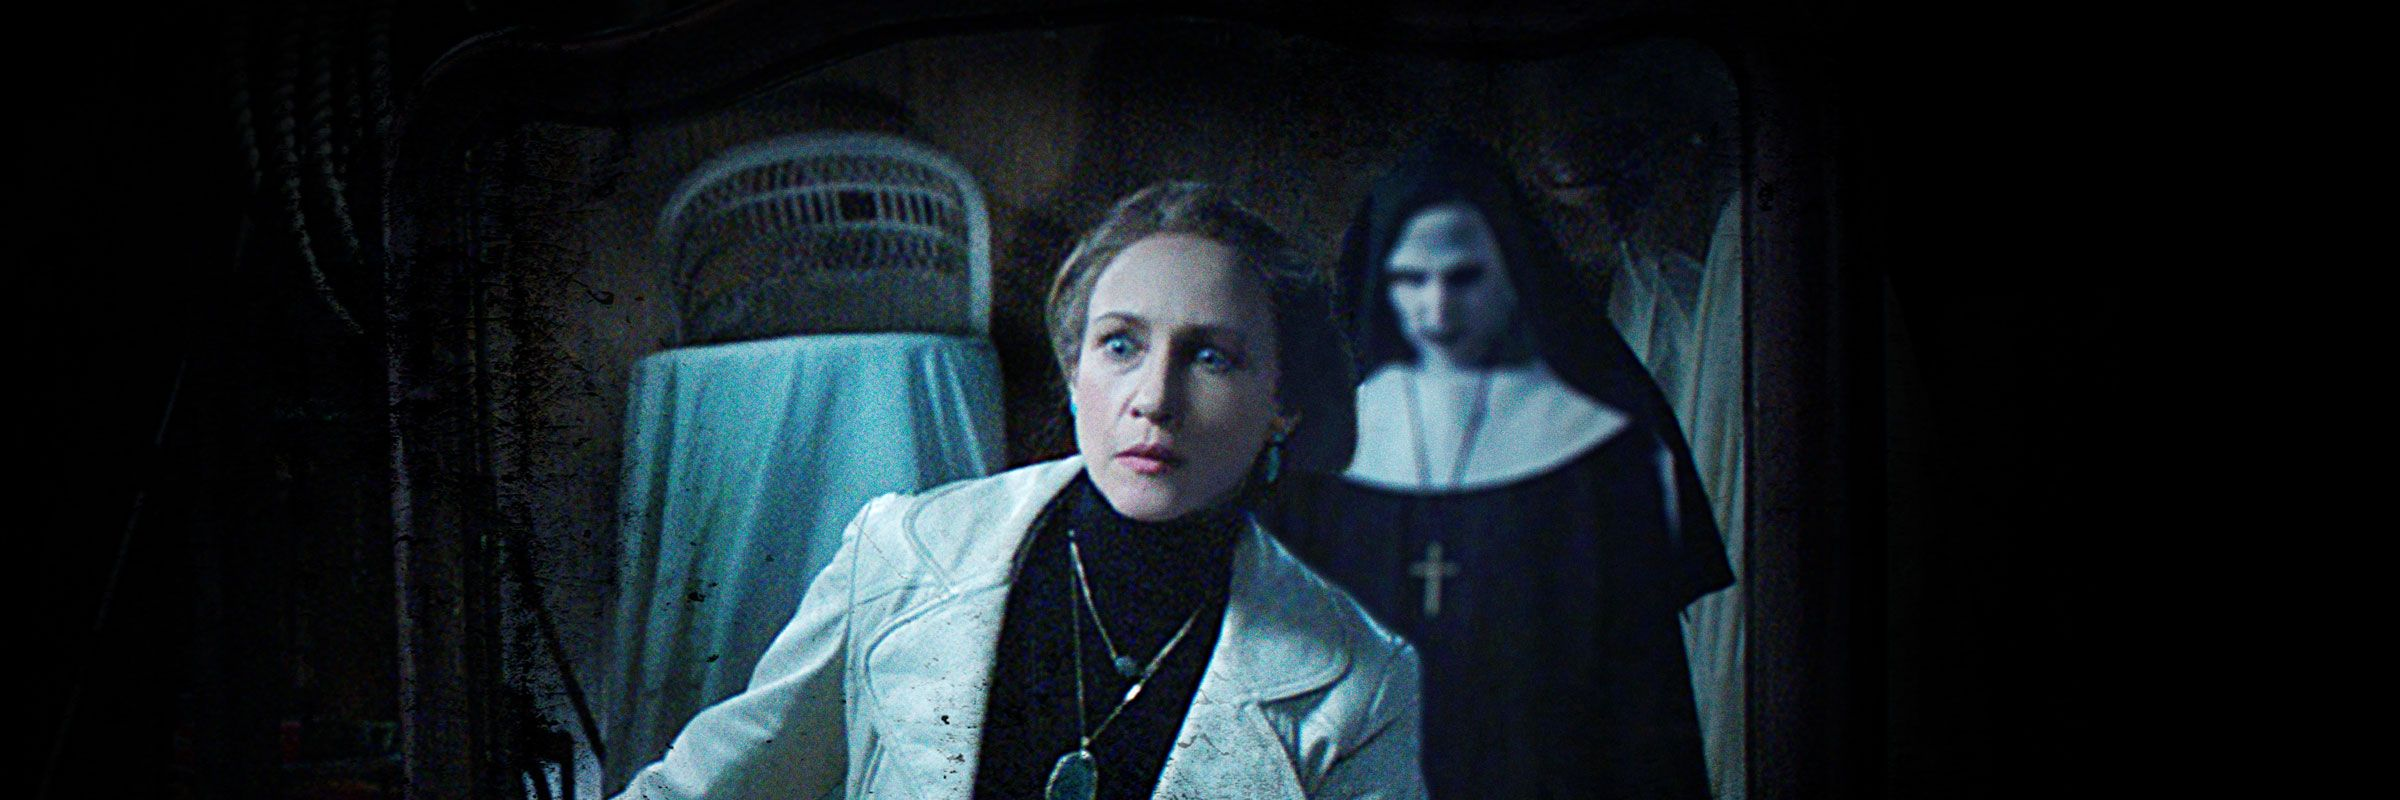 The Conjuring 2 Full Movie Movies Anywhere